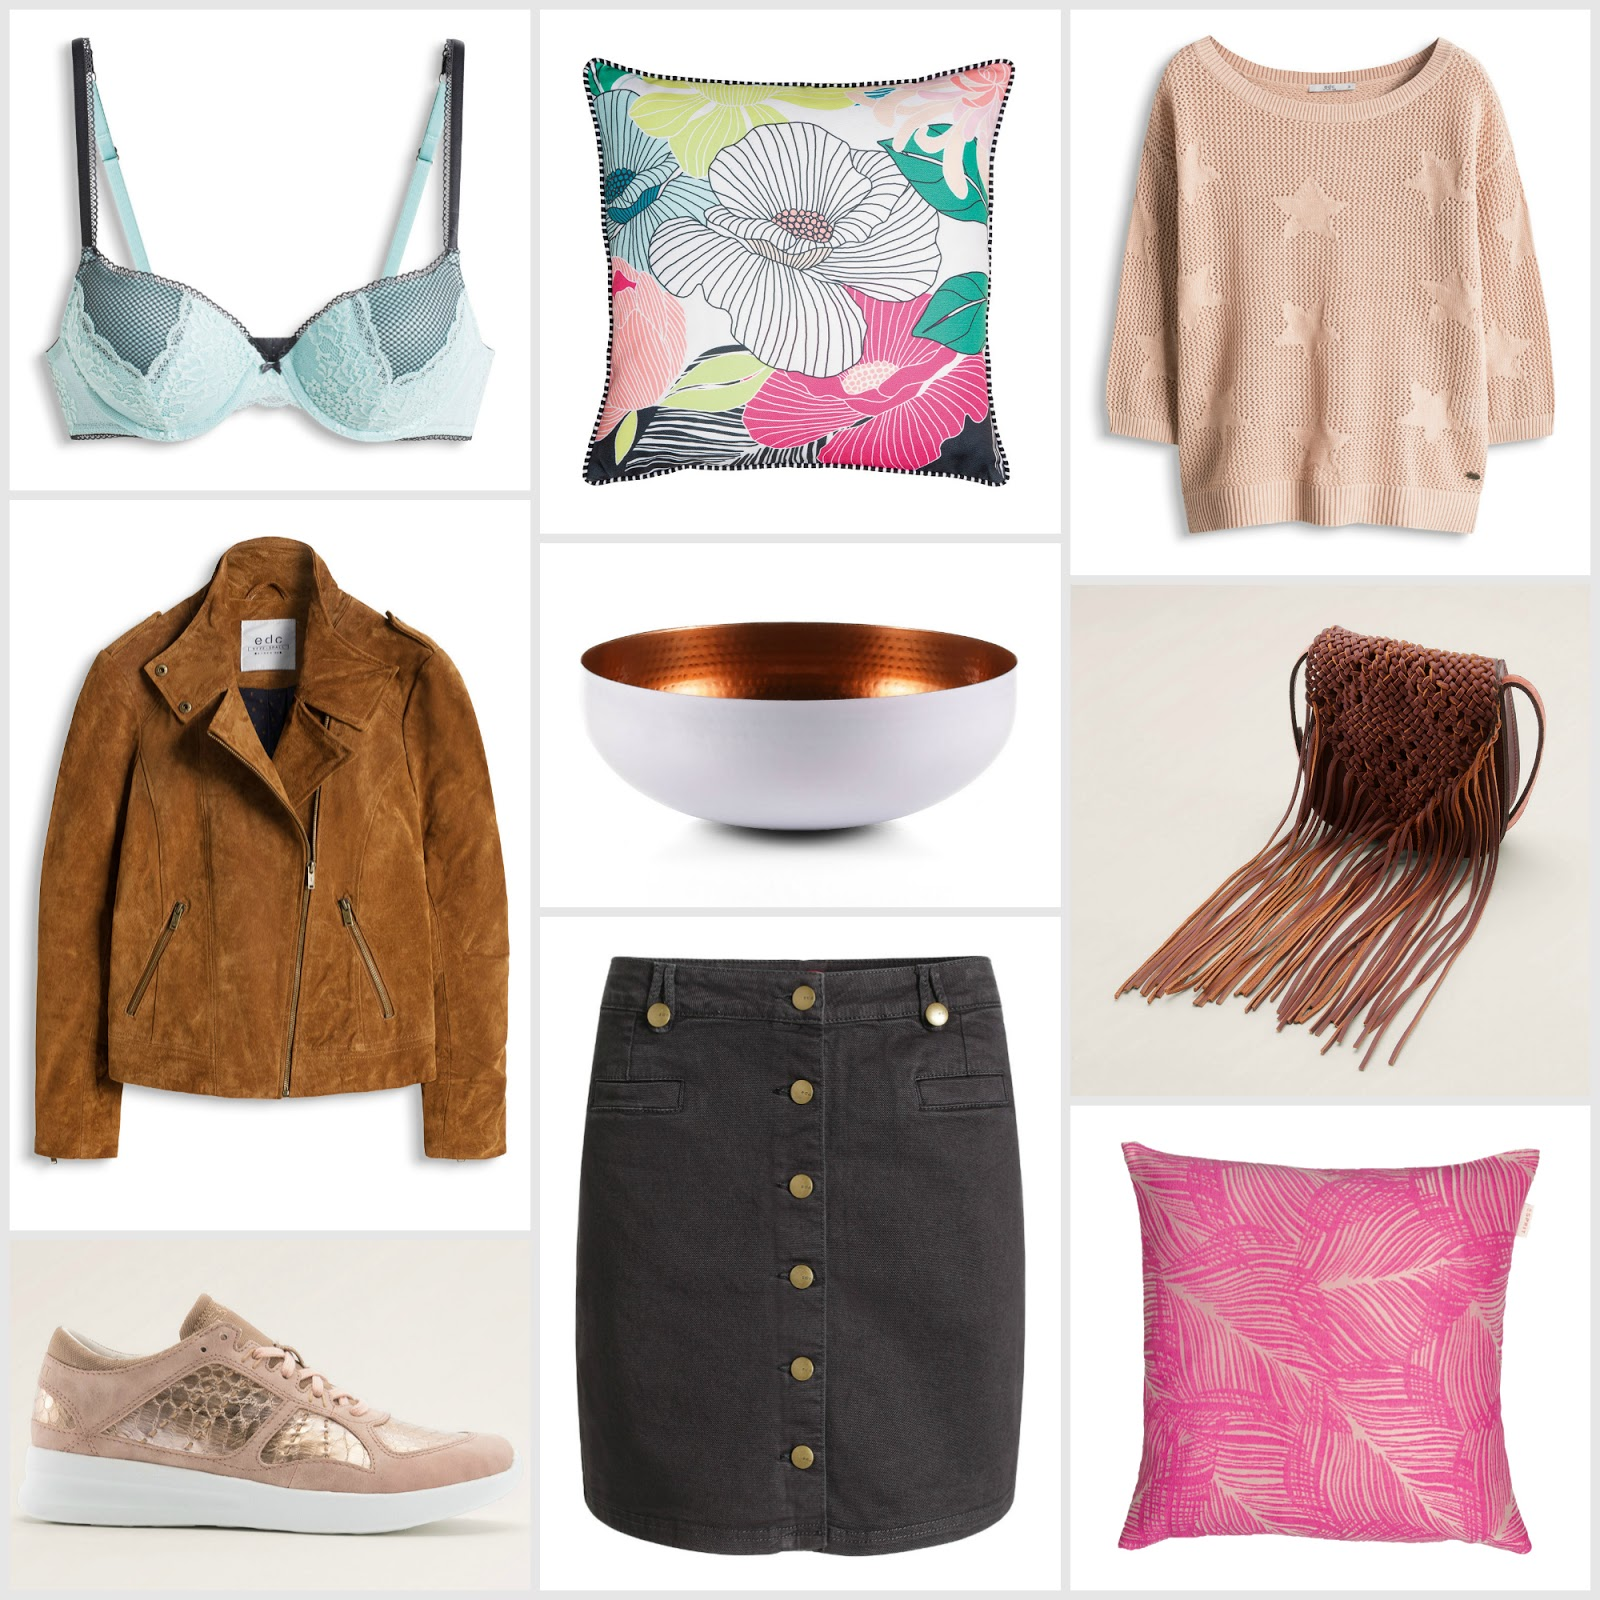 spring summer clothing homeware esprit wishlist